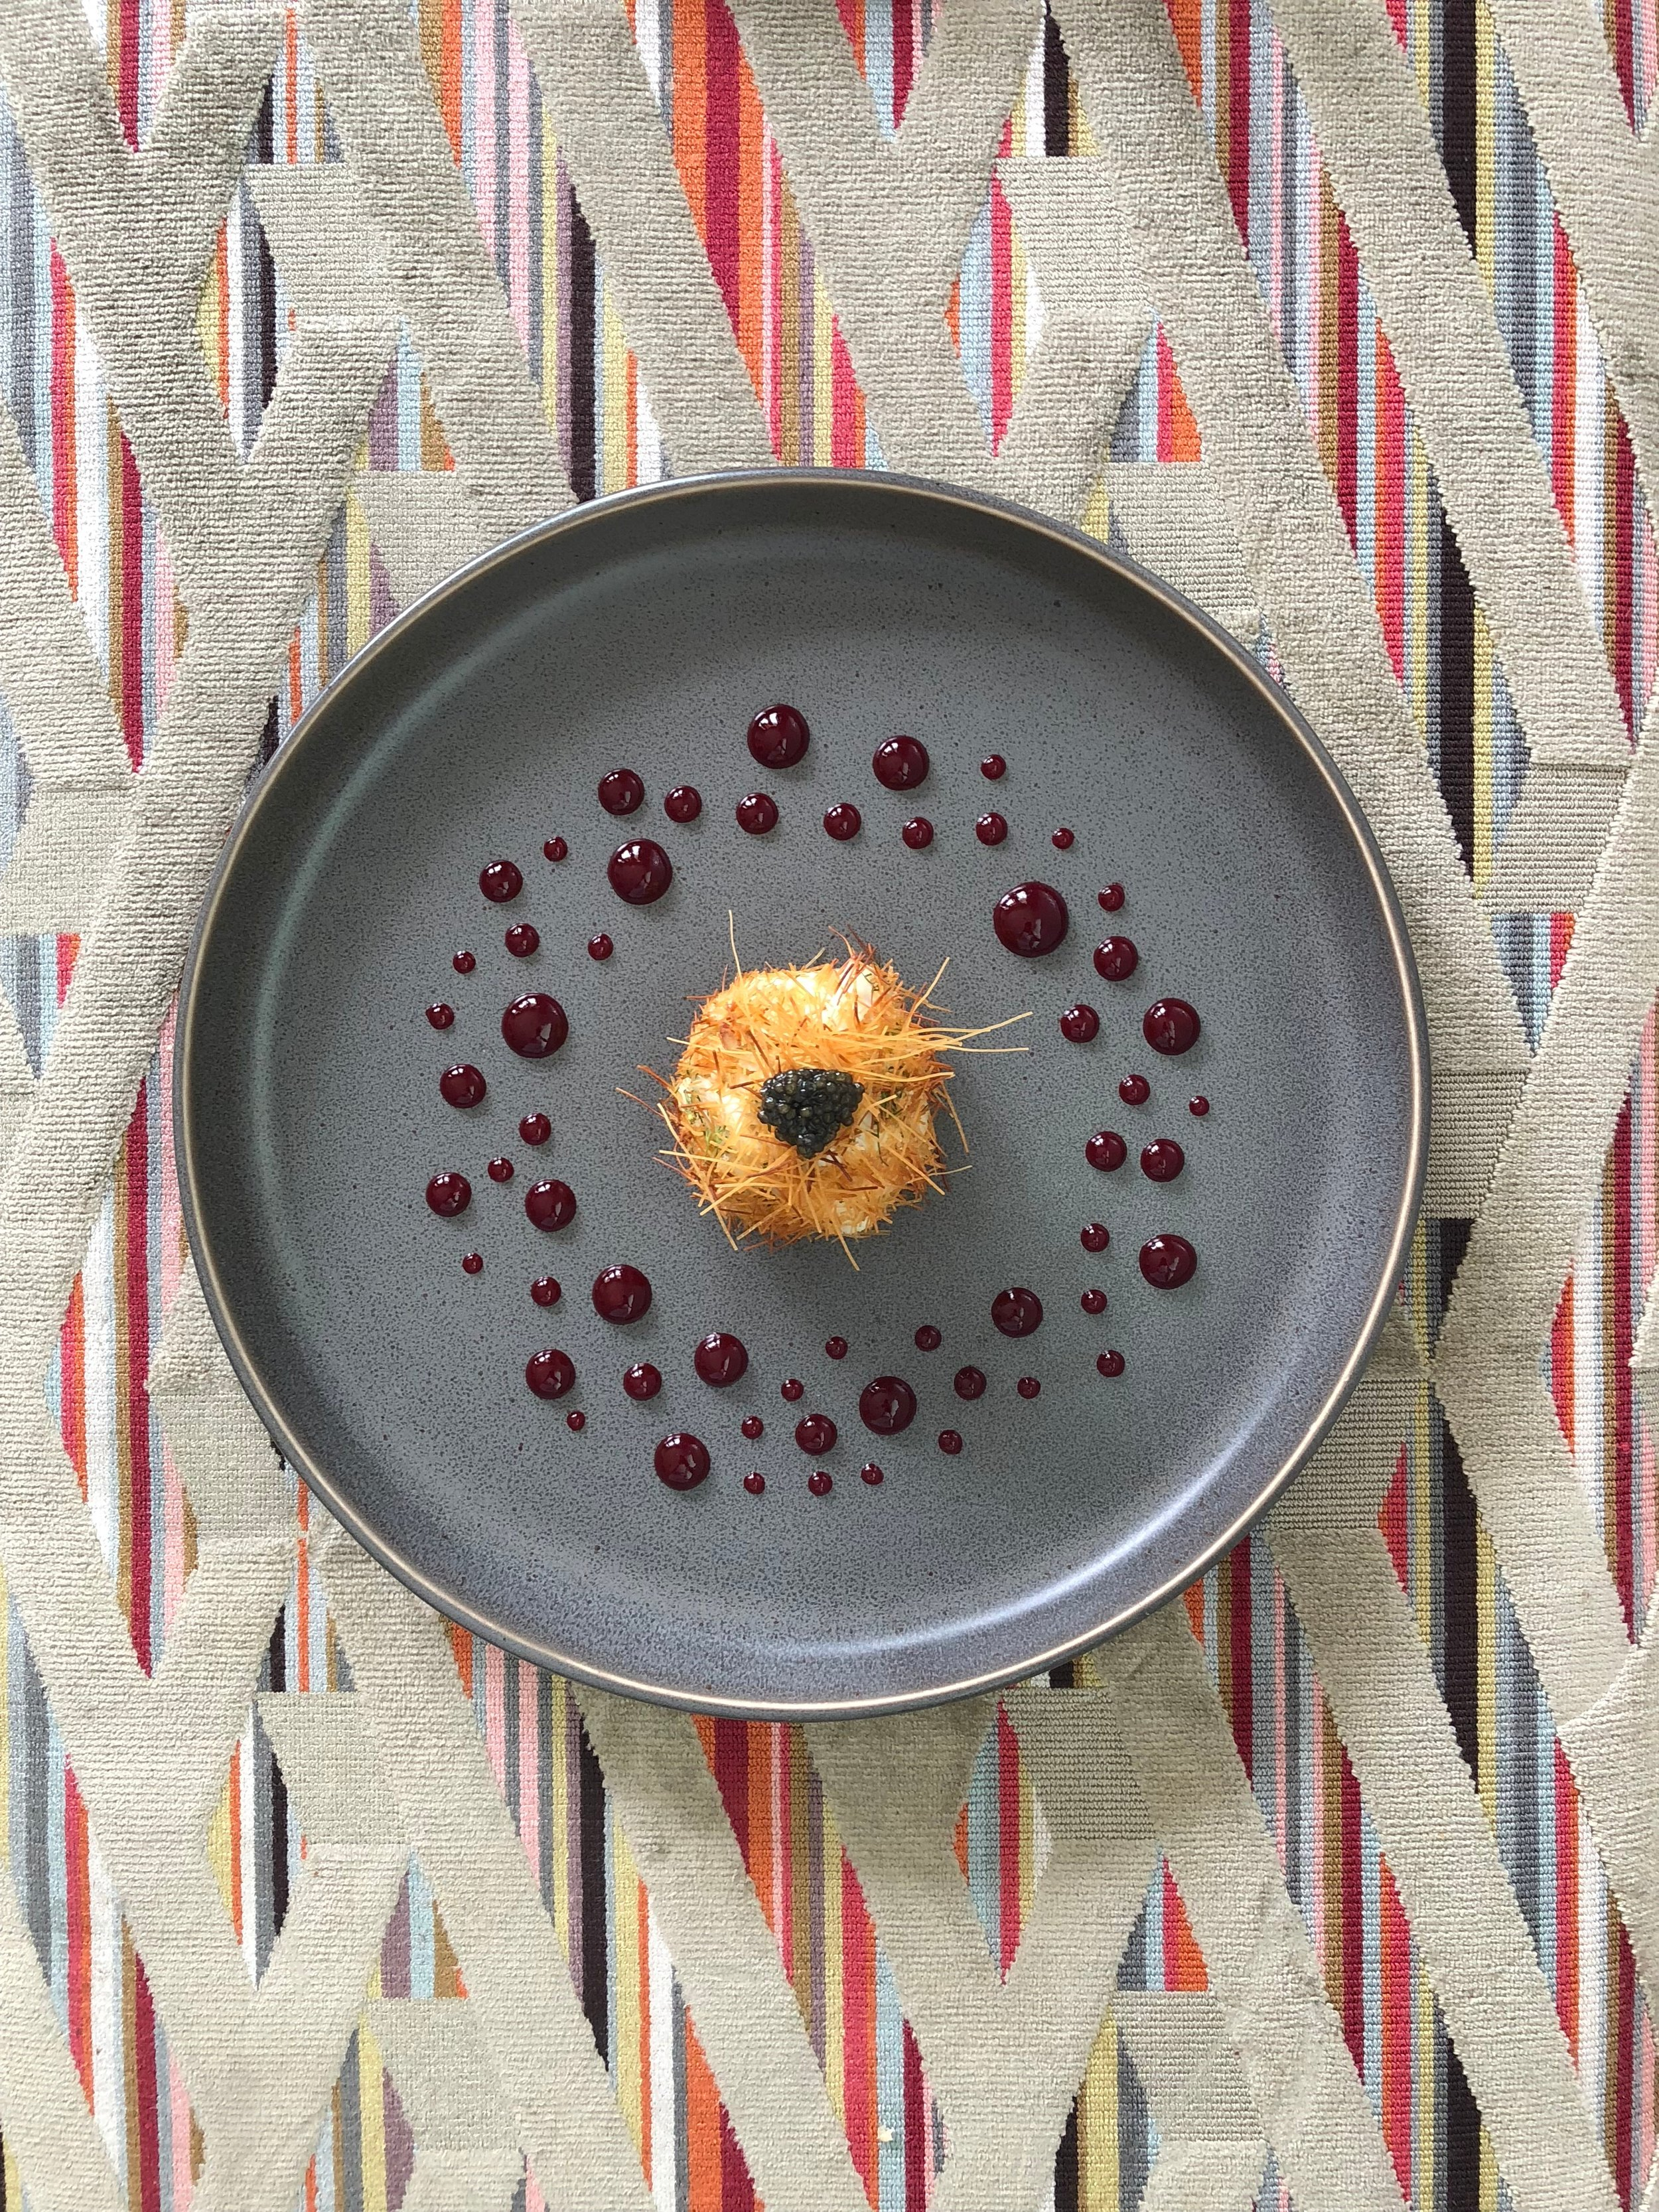 """Crab Crostillant with Raspberry Sauce: """"This is the first dish of hers that I fell in love with. I couldn't believe the flavors would work together. Such a mind bending combination that is just so Raji."""" - Erling Jensen  Photograph by Meredith Gardner"""